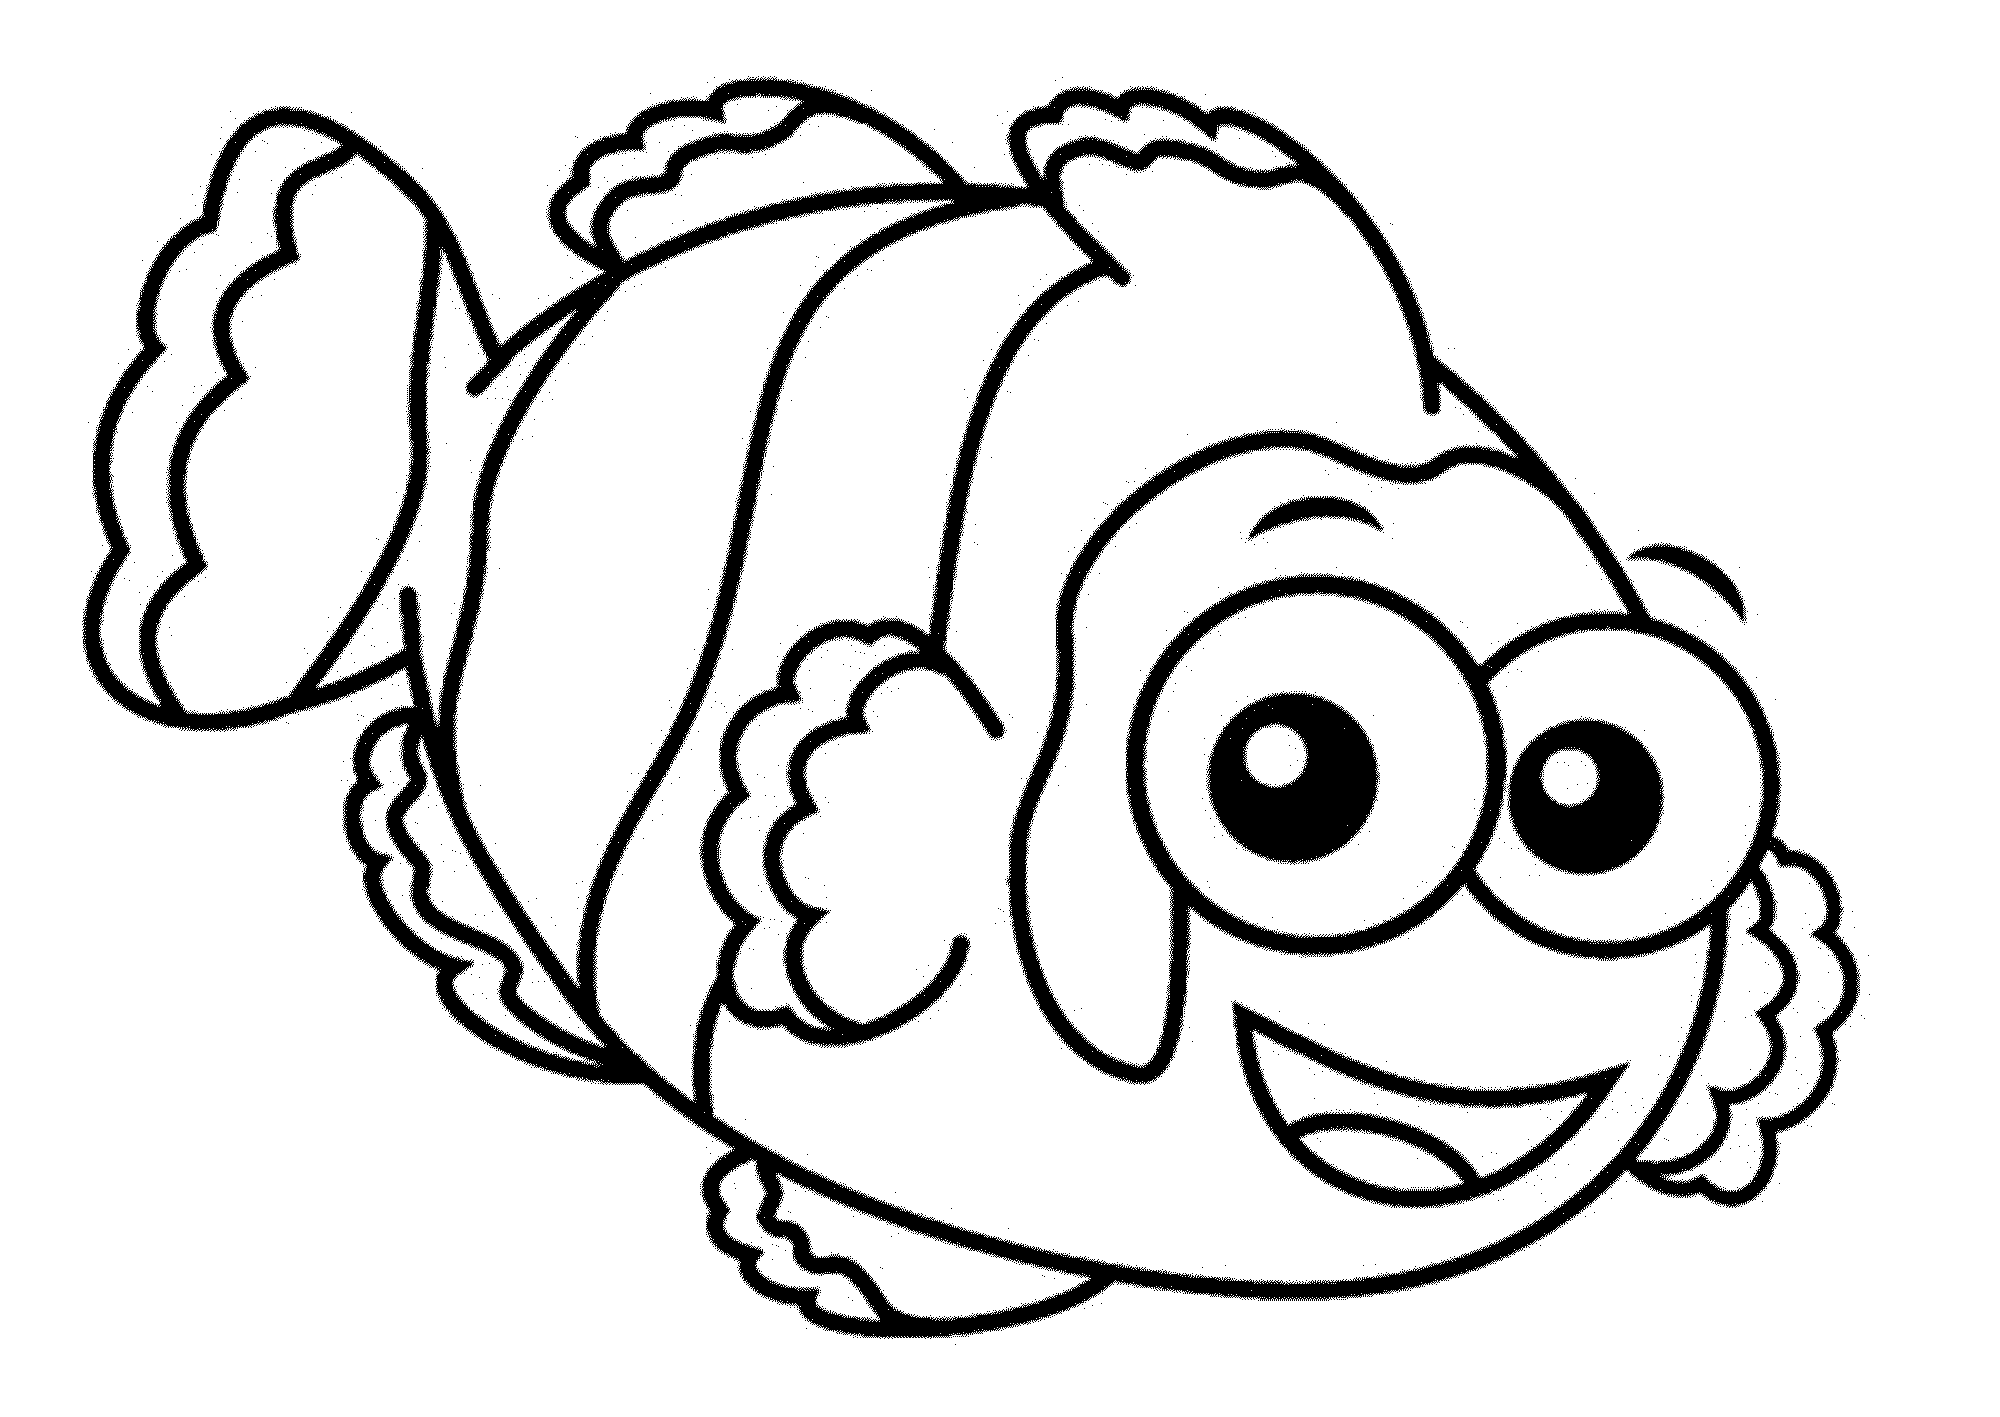 images of fish for colouring free simple fish drawing for kids download free clip art fish images for of colouring